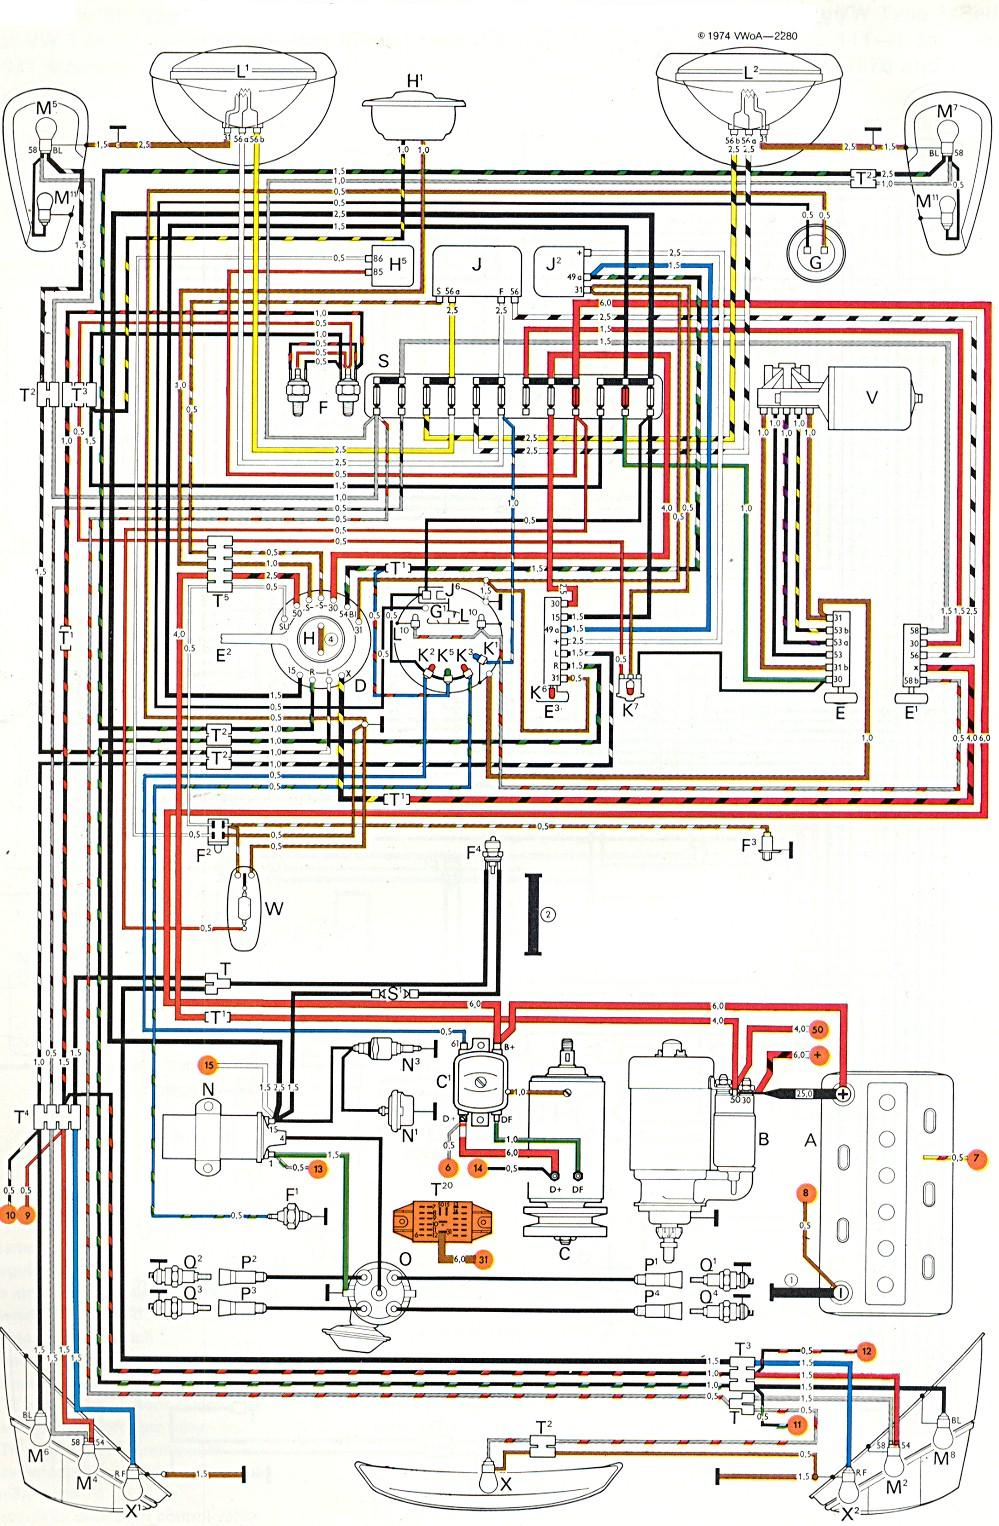 Electrical+diagram 1970 vw bug ignition wiring diagram wire data schema \u2022